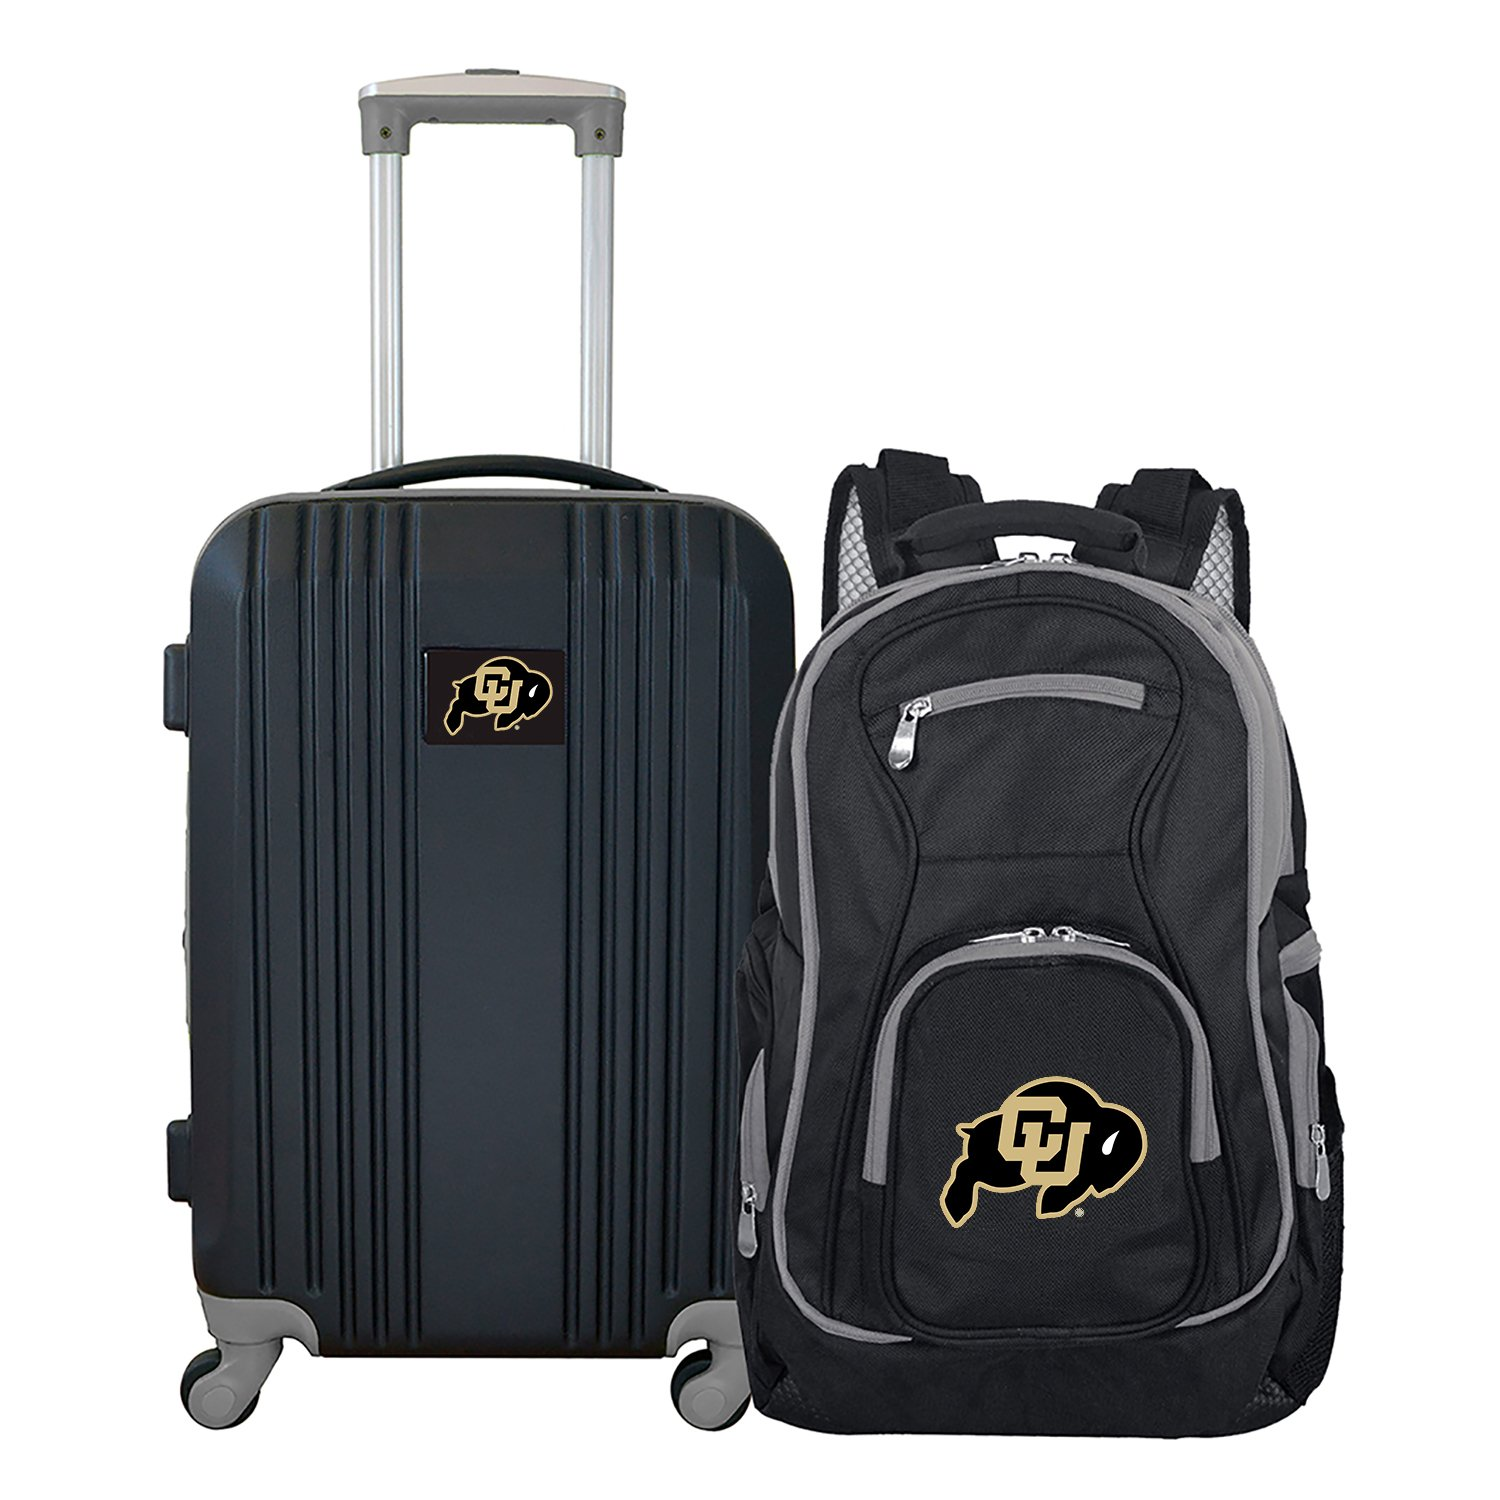 NCAA Colorado Buffaloes 2-Piece Luggage Set